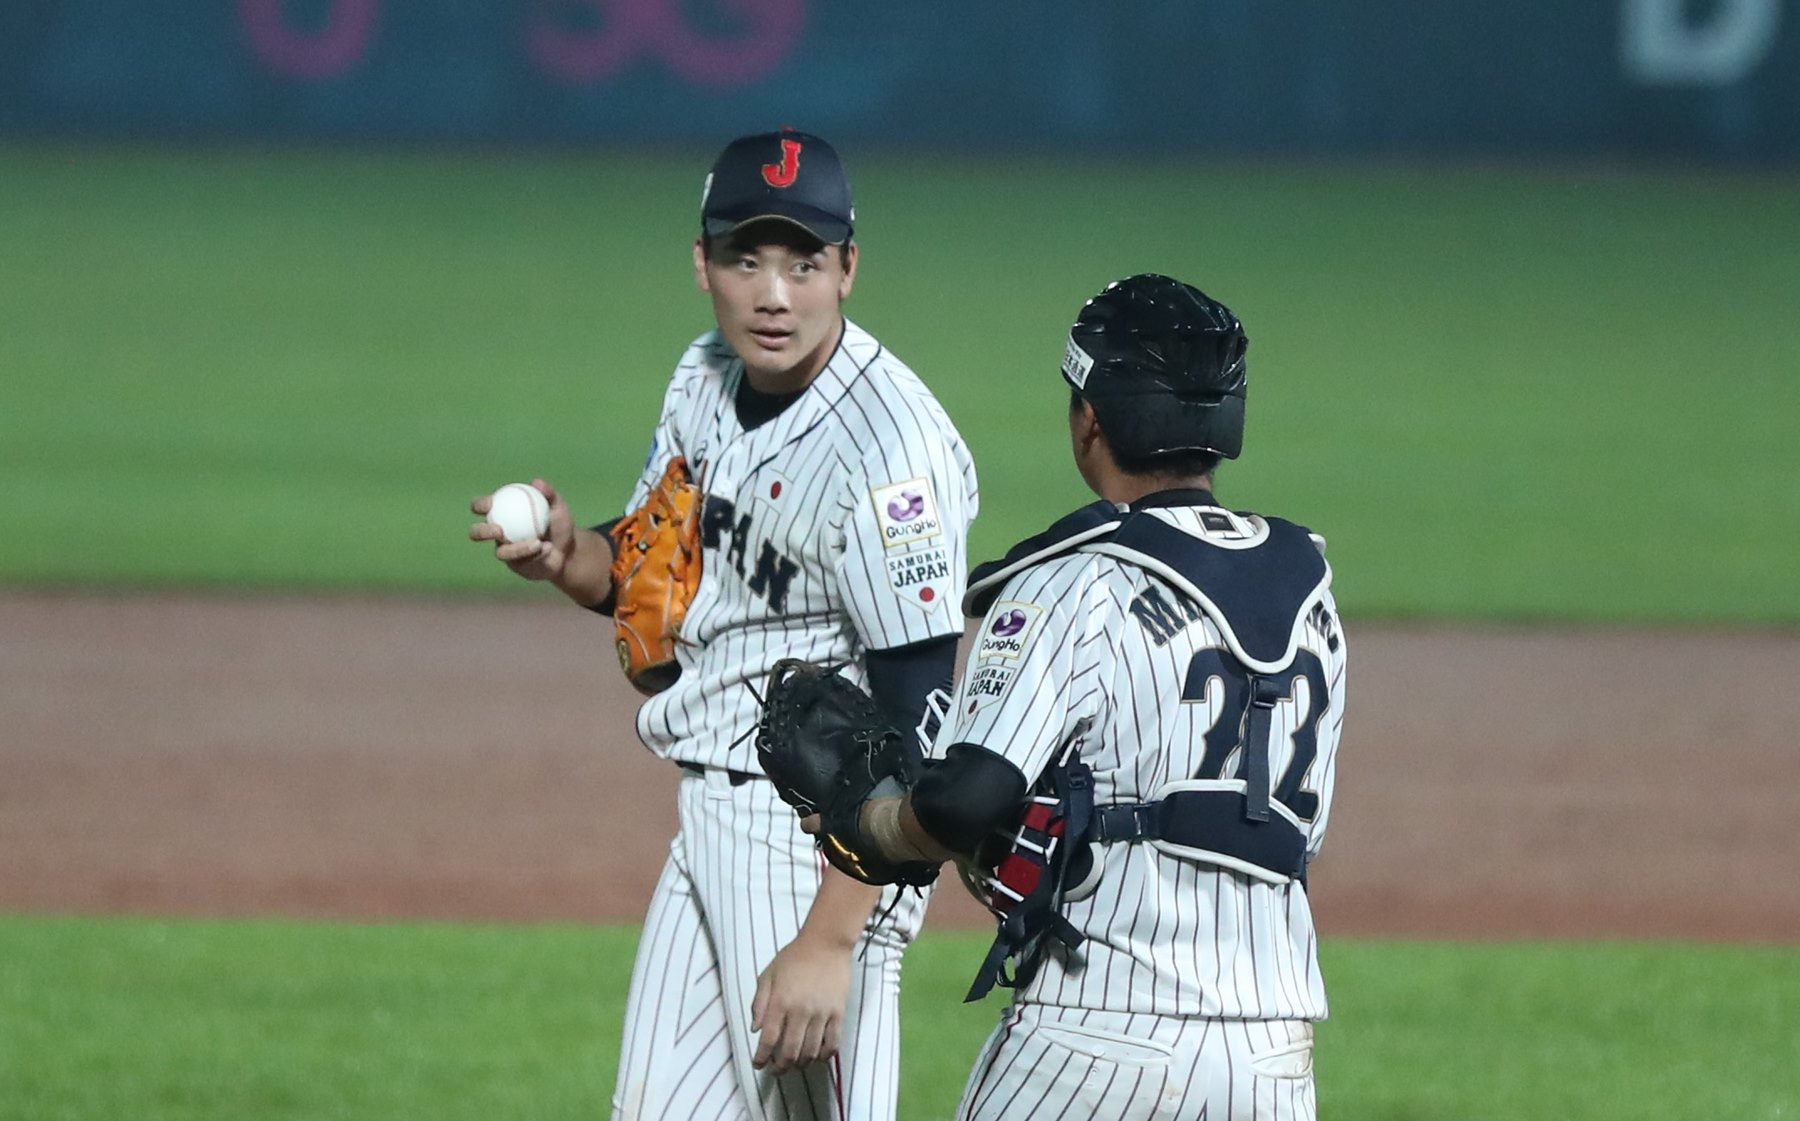 Difficult moment for Japan's pitching staff